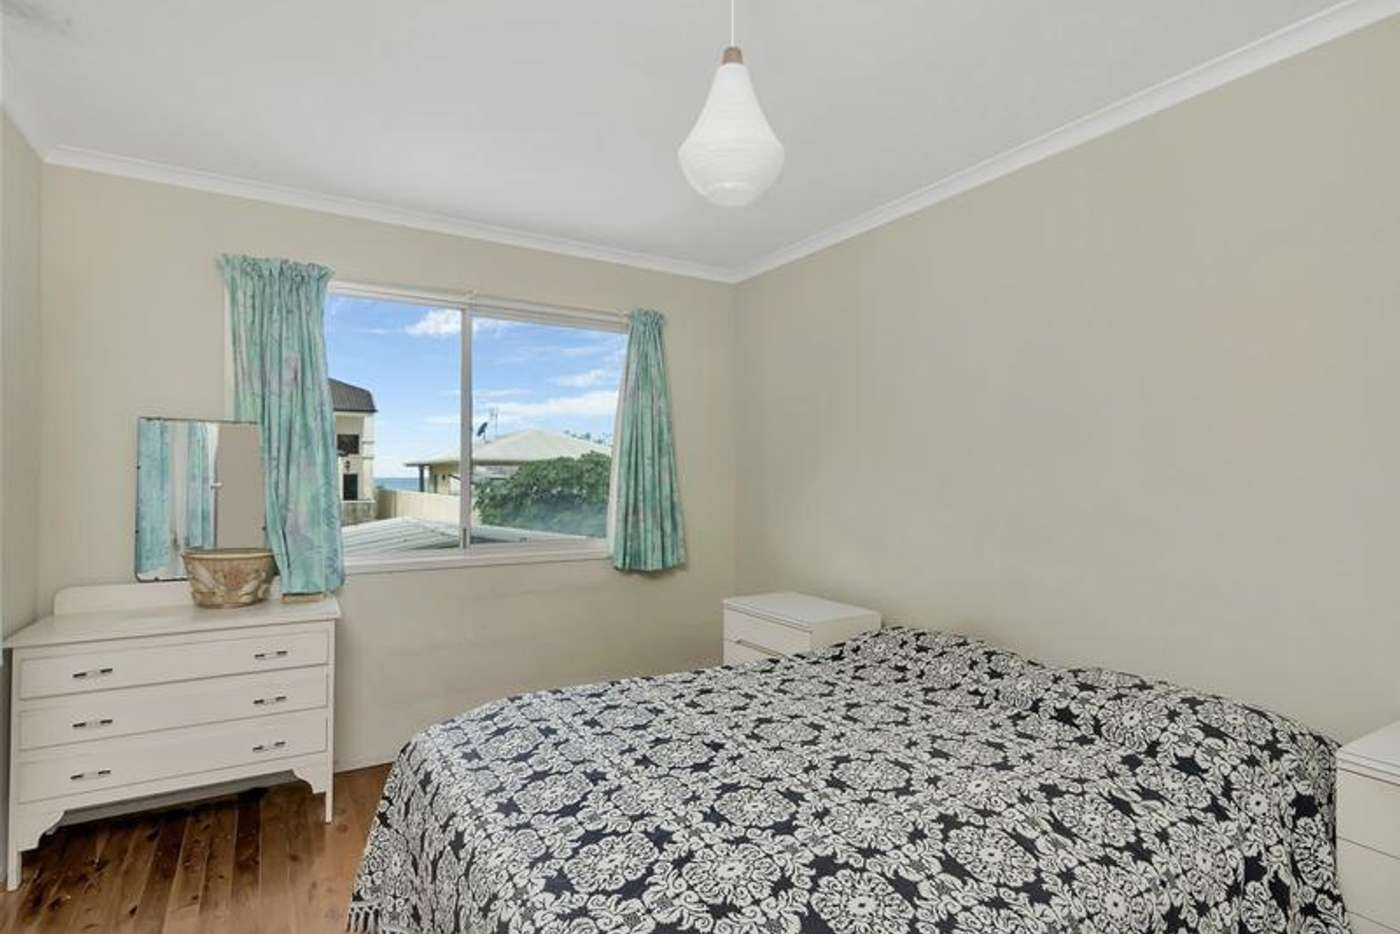 Sixth view of Homely house listing, 1377 Gold Coast Highway, Palm Beach QLD 4221